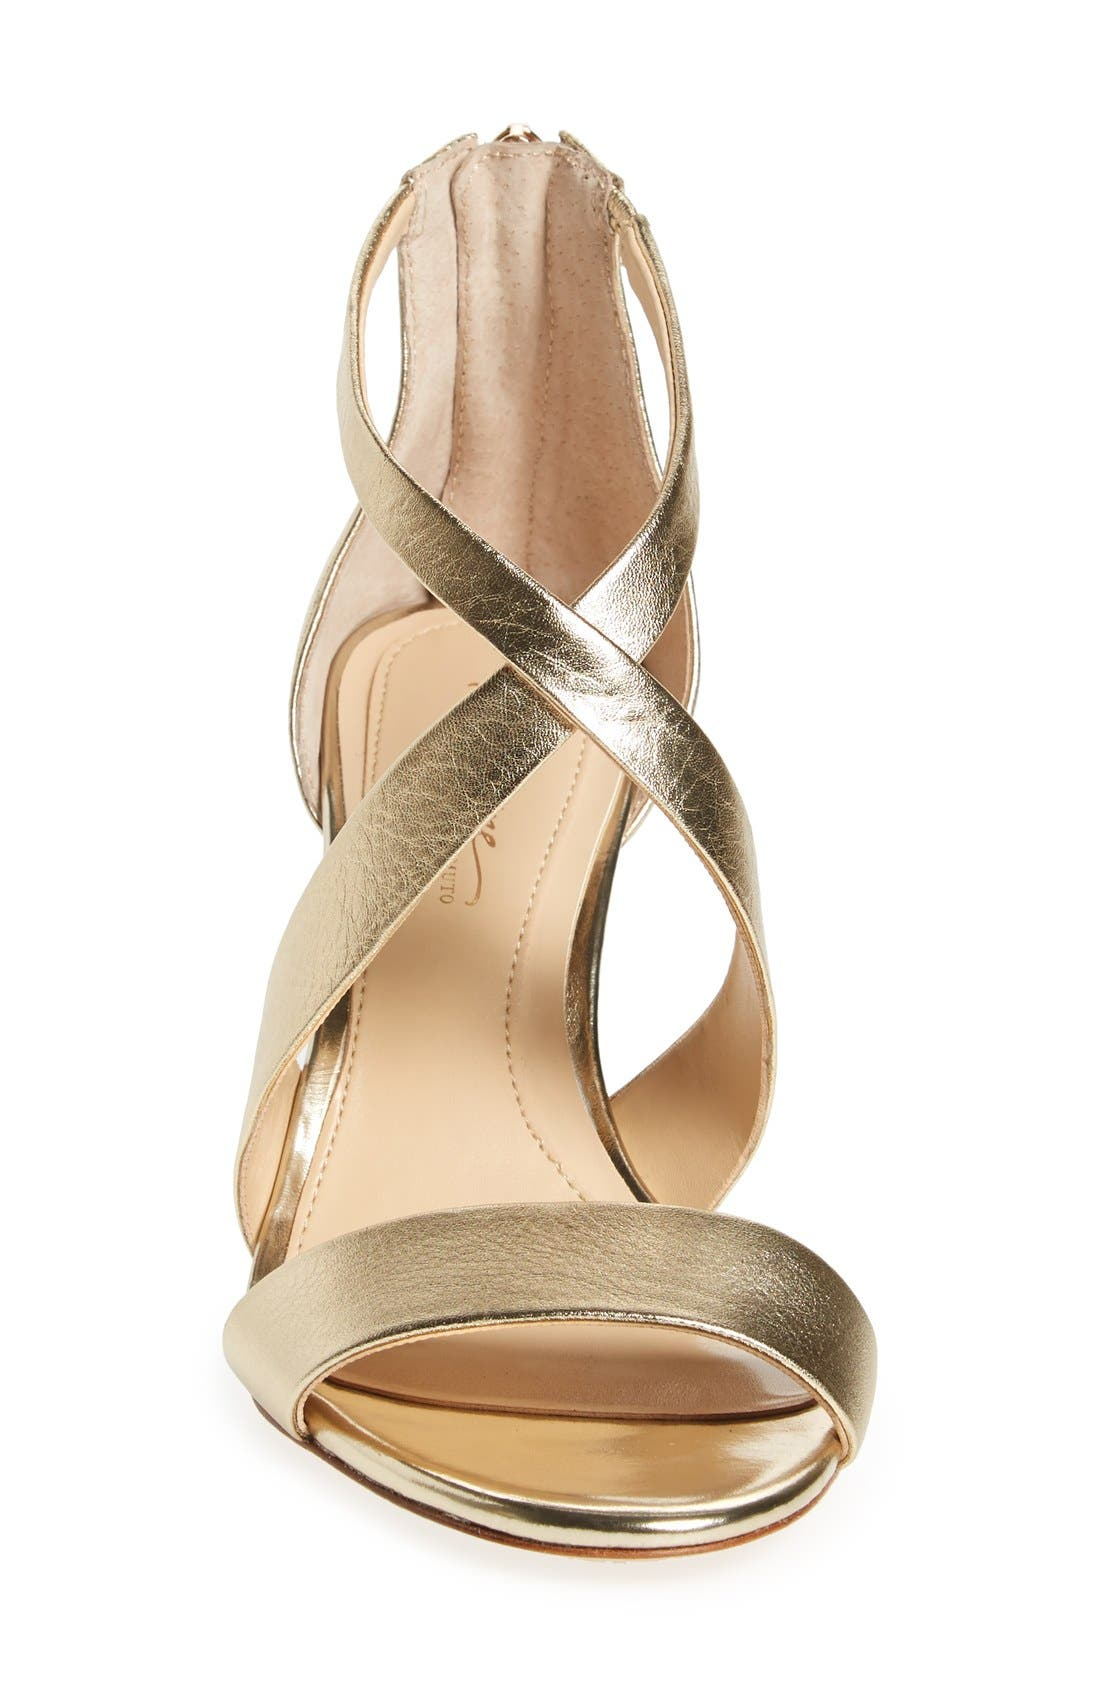 'Pascal 2' Strappy Evening Sandal,                             Alternate thumbnail 4, color,                             SOFT GOLD LEATHER